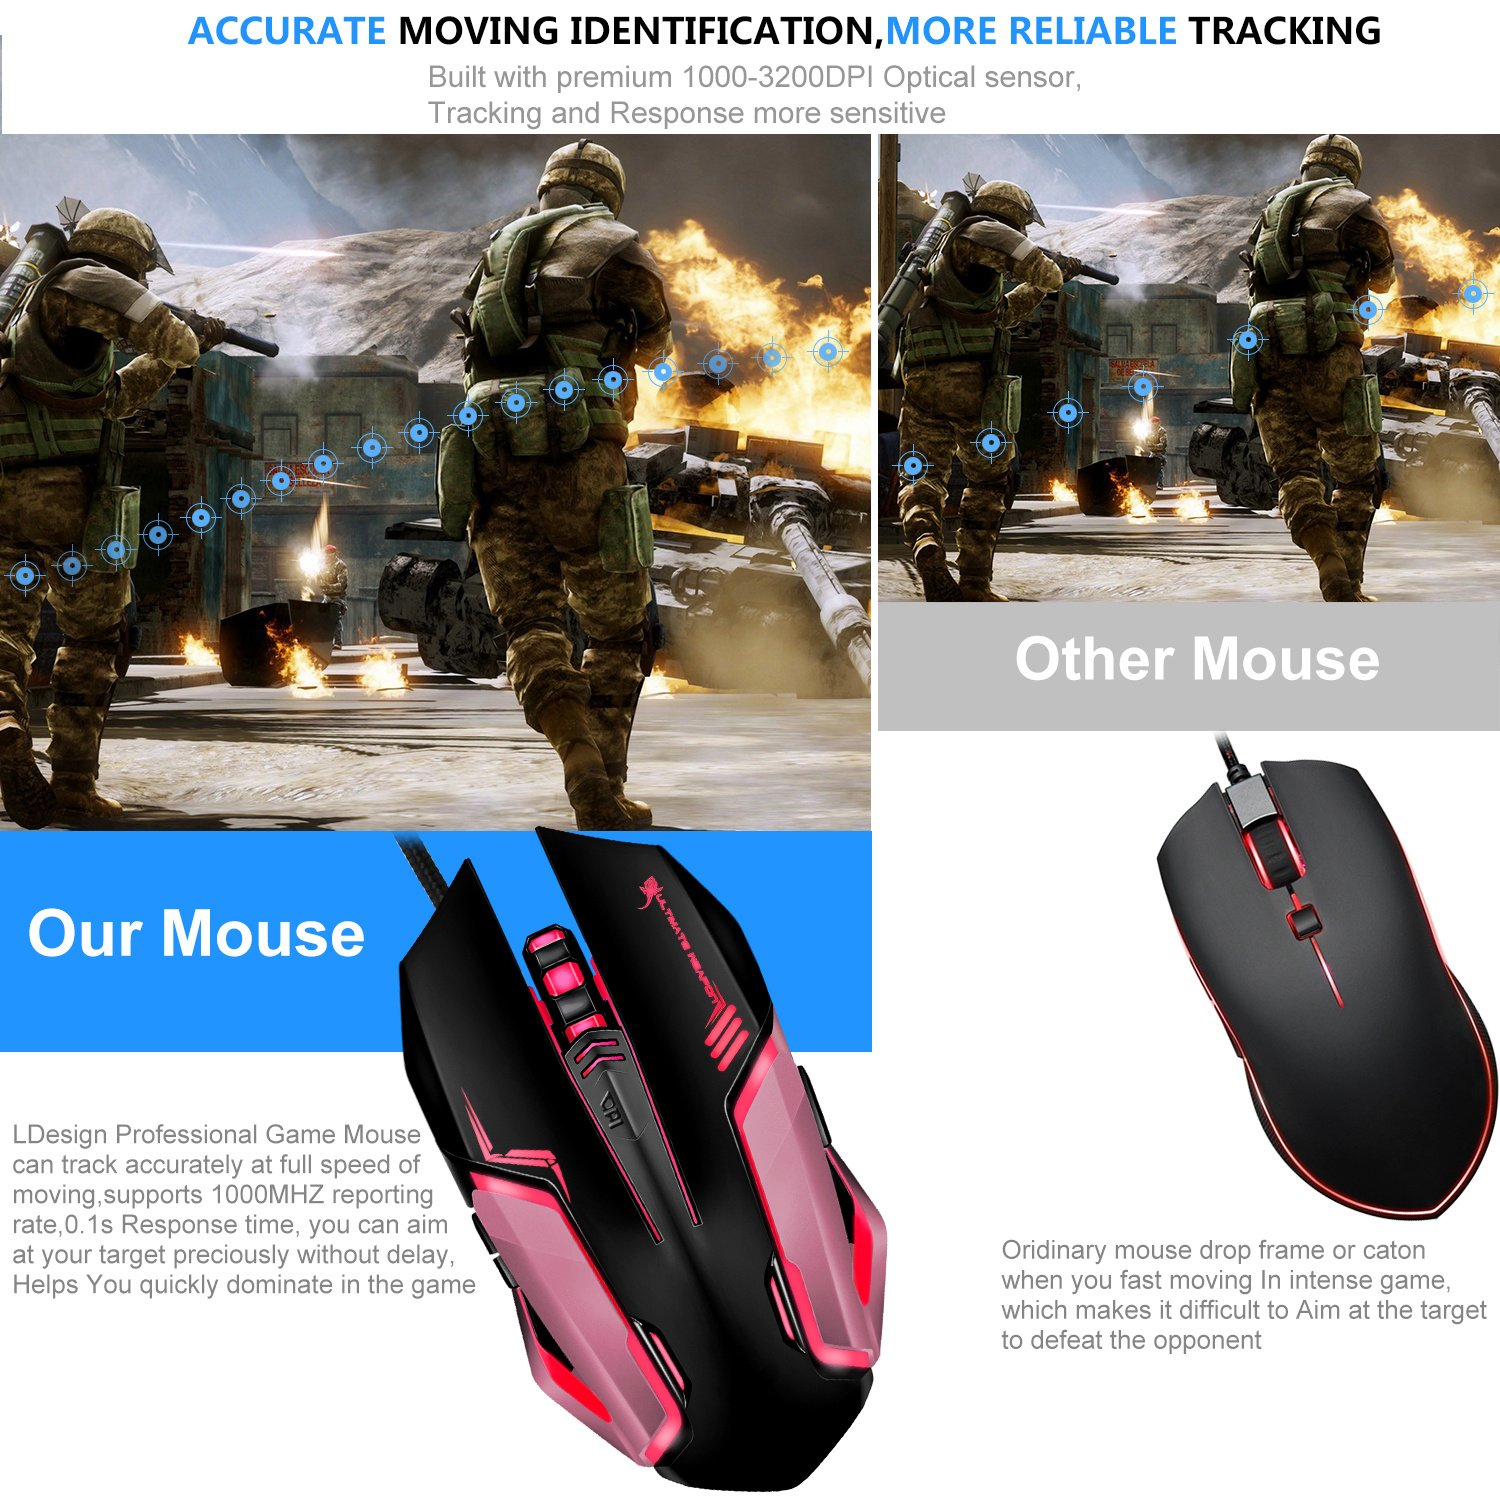 Gaming Mouse, LDesign 3200DPI Wired Gamer Mice ACC Optical Ergonomic with 4 Adjustable DPI Switch, 7-Color Breathing Light, High Accuracy Computer Mice Plug and Play (Black/Pink)